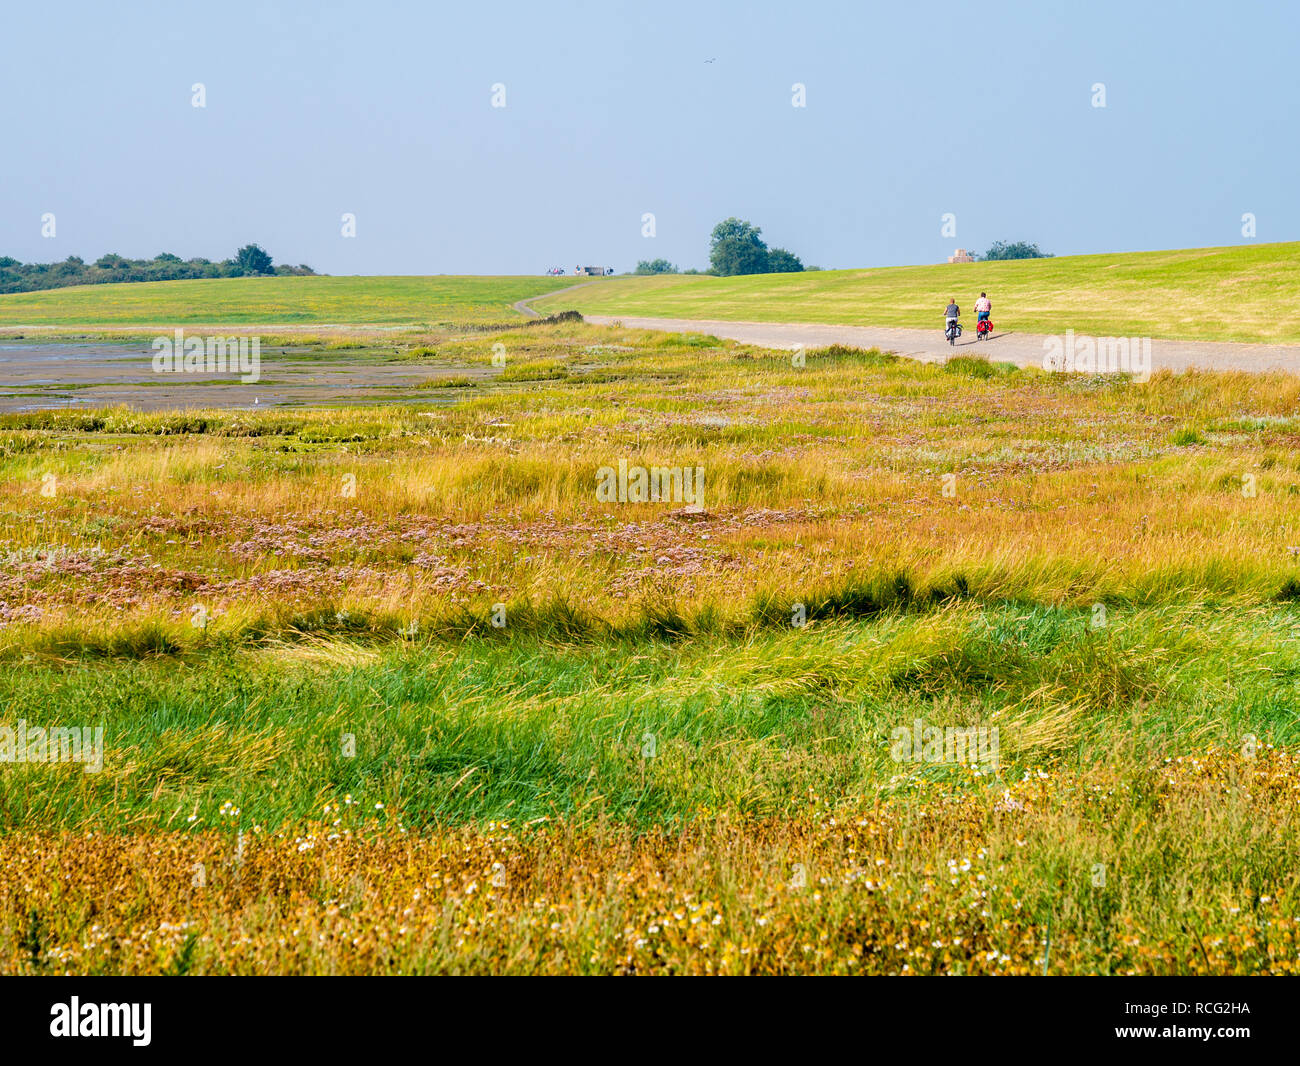 People riding bicycles on dike with salt marshes at low tide, West Frisian island Schiermonnikoog, Netherlands Stock Photo